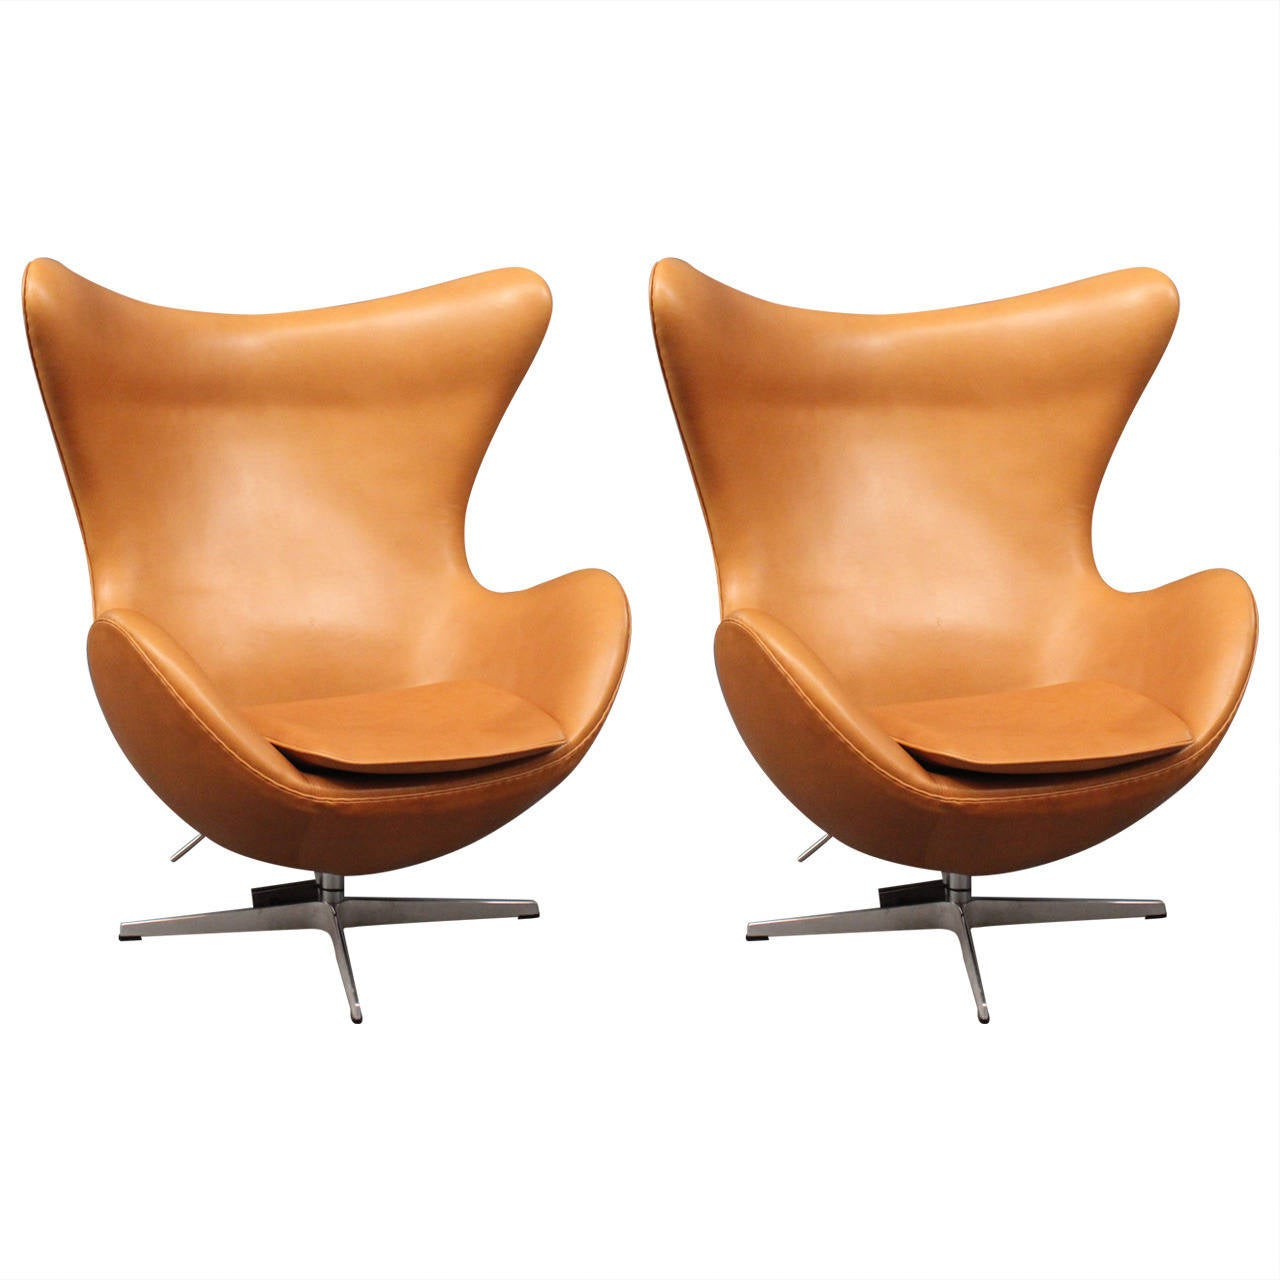 Design Egg Chair egg chair designed by arne jacobsen 1958 manufactured fritz hansen 1